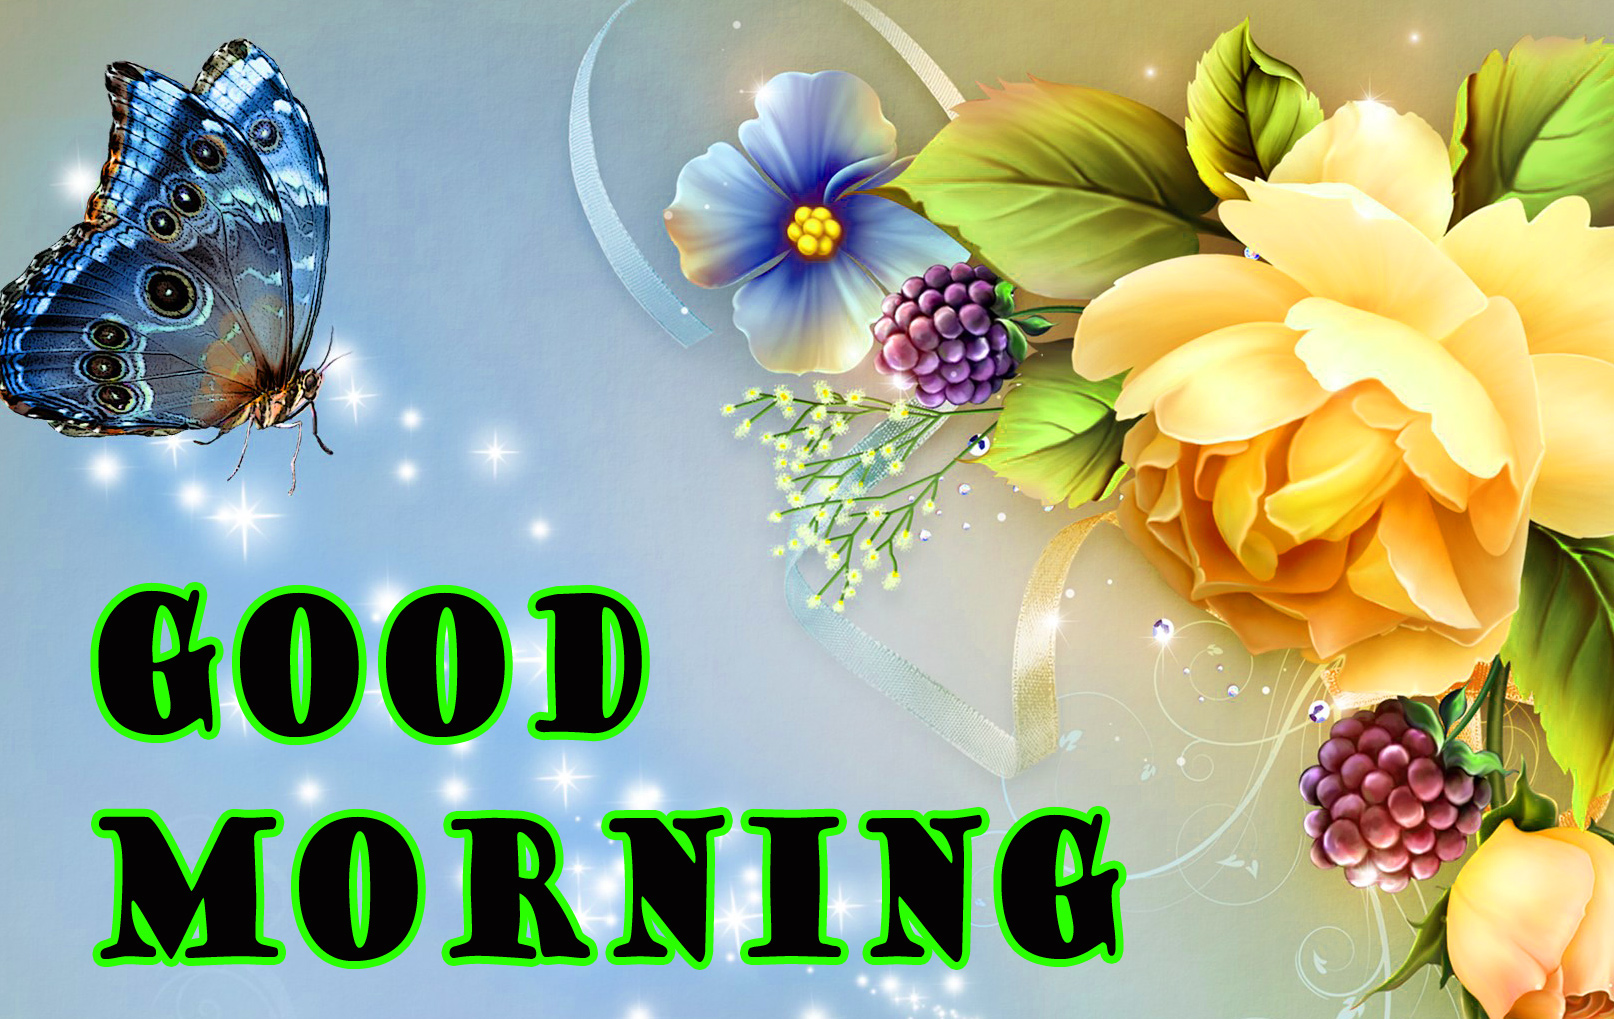 गुड मॉर्निंग New Wonderful Good Morning Images Photo Pictures HD Download